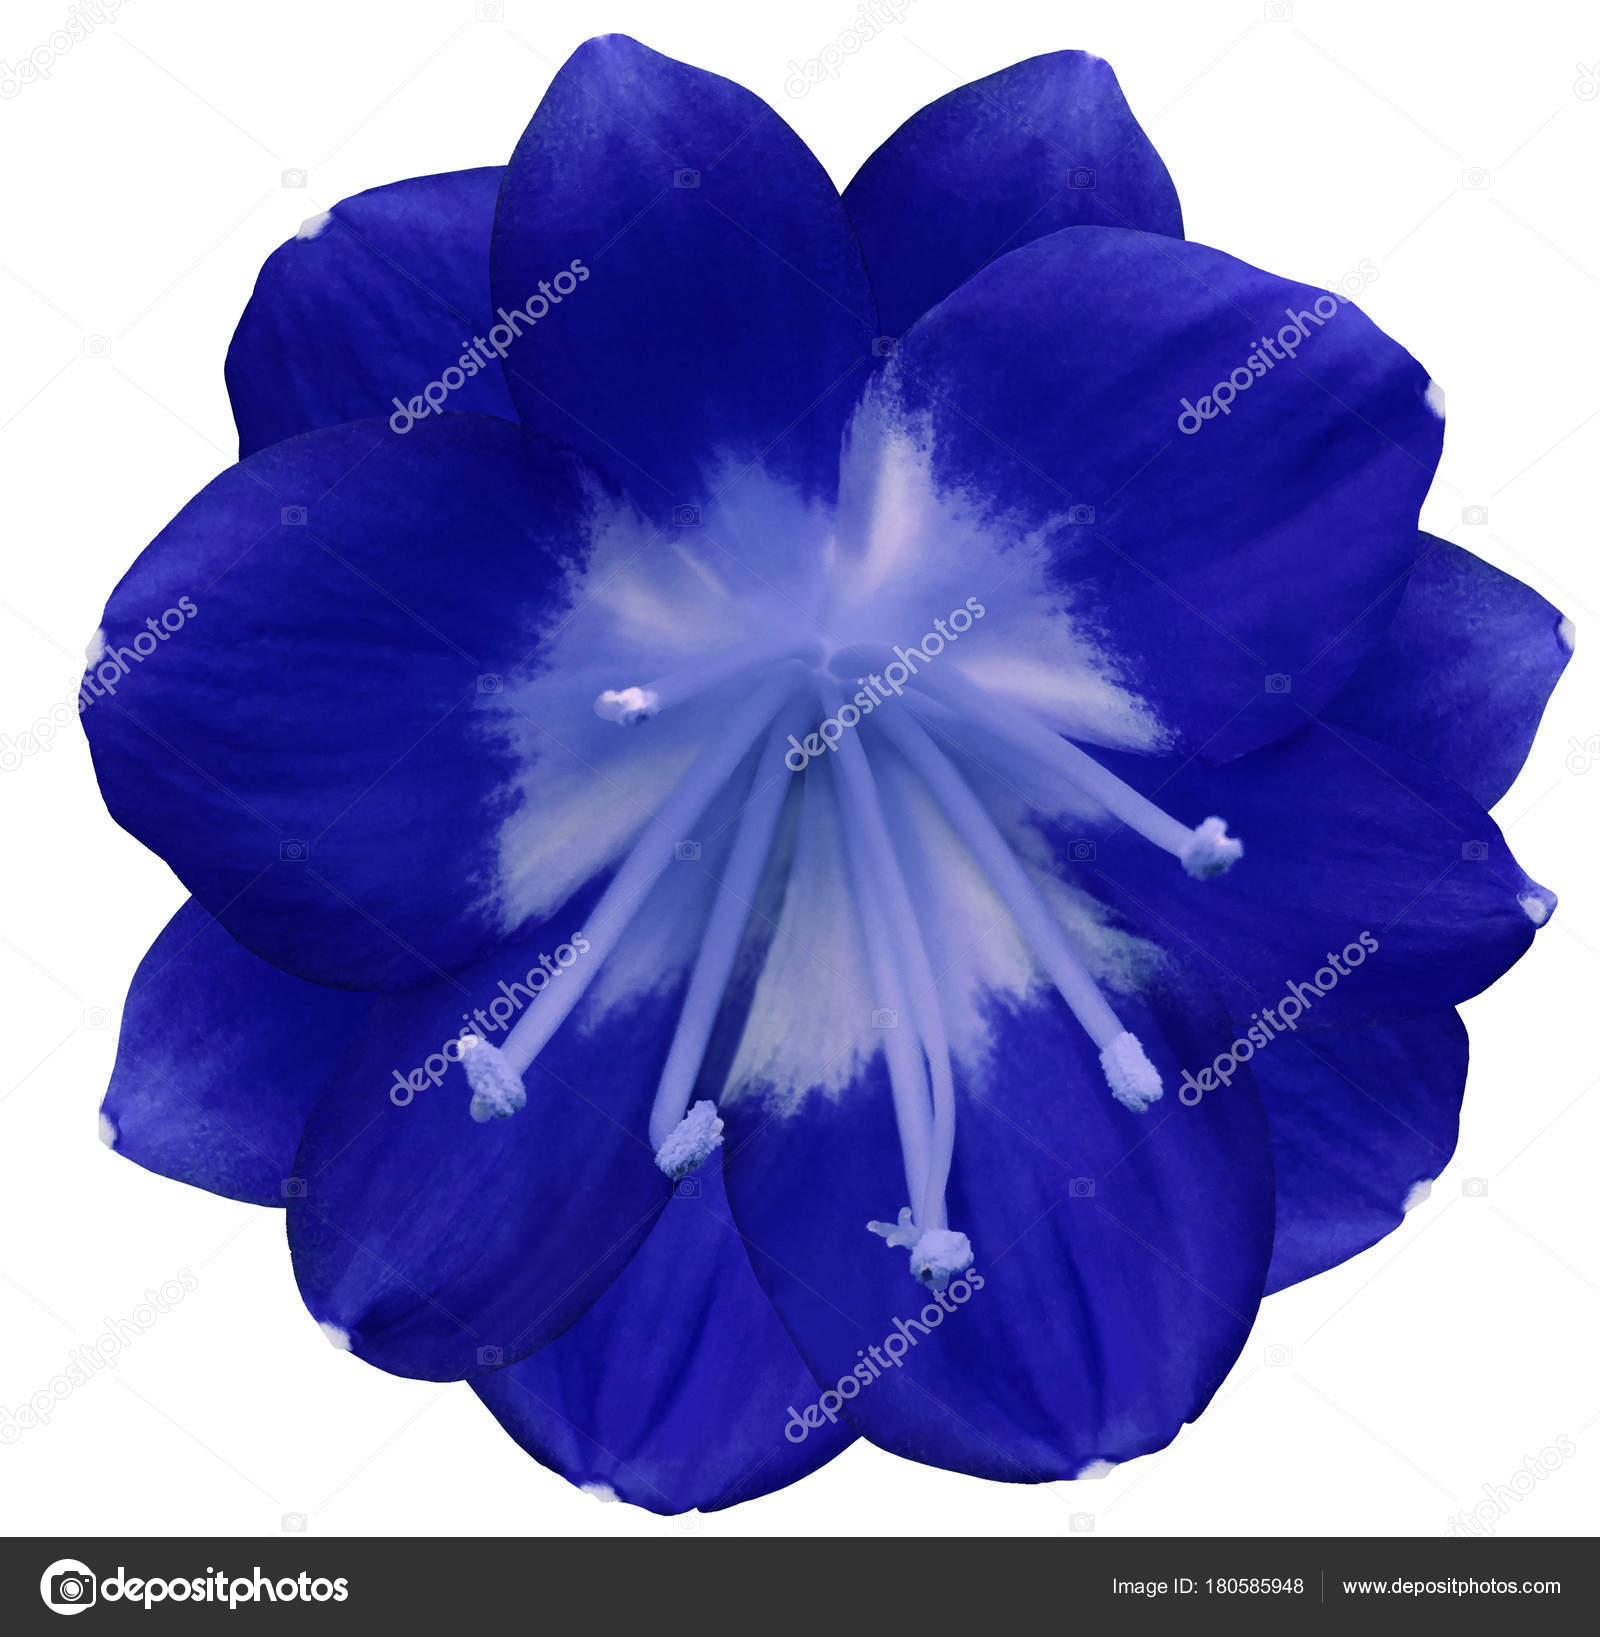 Lily blue flower isolated clipping path white background yellow lily blue flower isolated with clipping path on a white background yellow pistils stamens yellow center for design closeup mightylinksfo